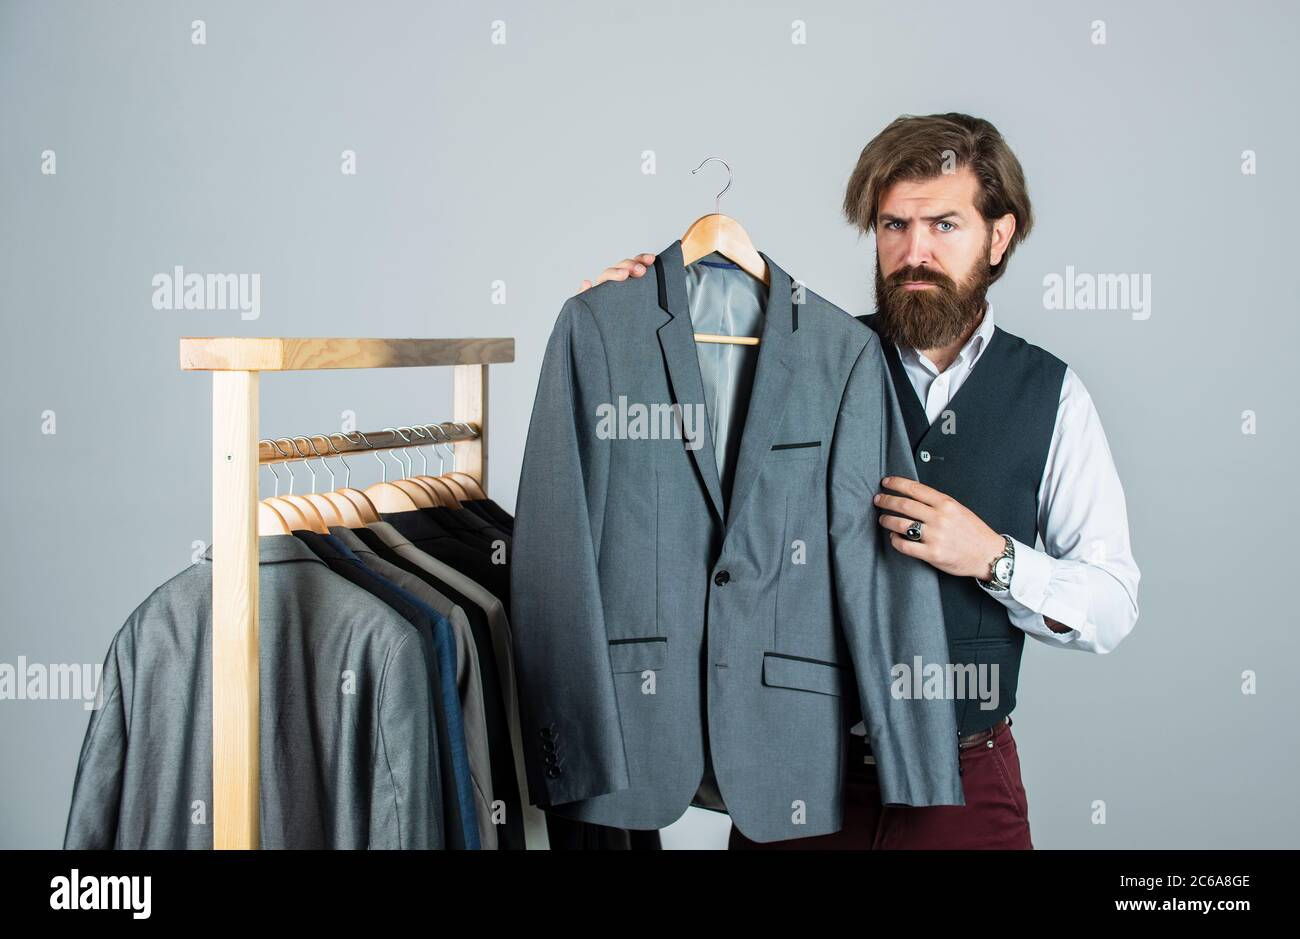 Tailor Measures Man Stylish Business Man At Workspace Fashion Design Studio Male Fashion Designer Individual Measures Hand Of Man Man Ordering Business Suit Posing Indoor Another Working Day Stock Photo Alamy